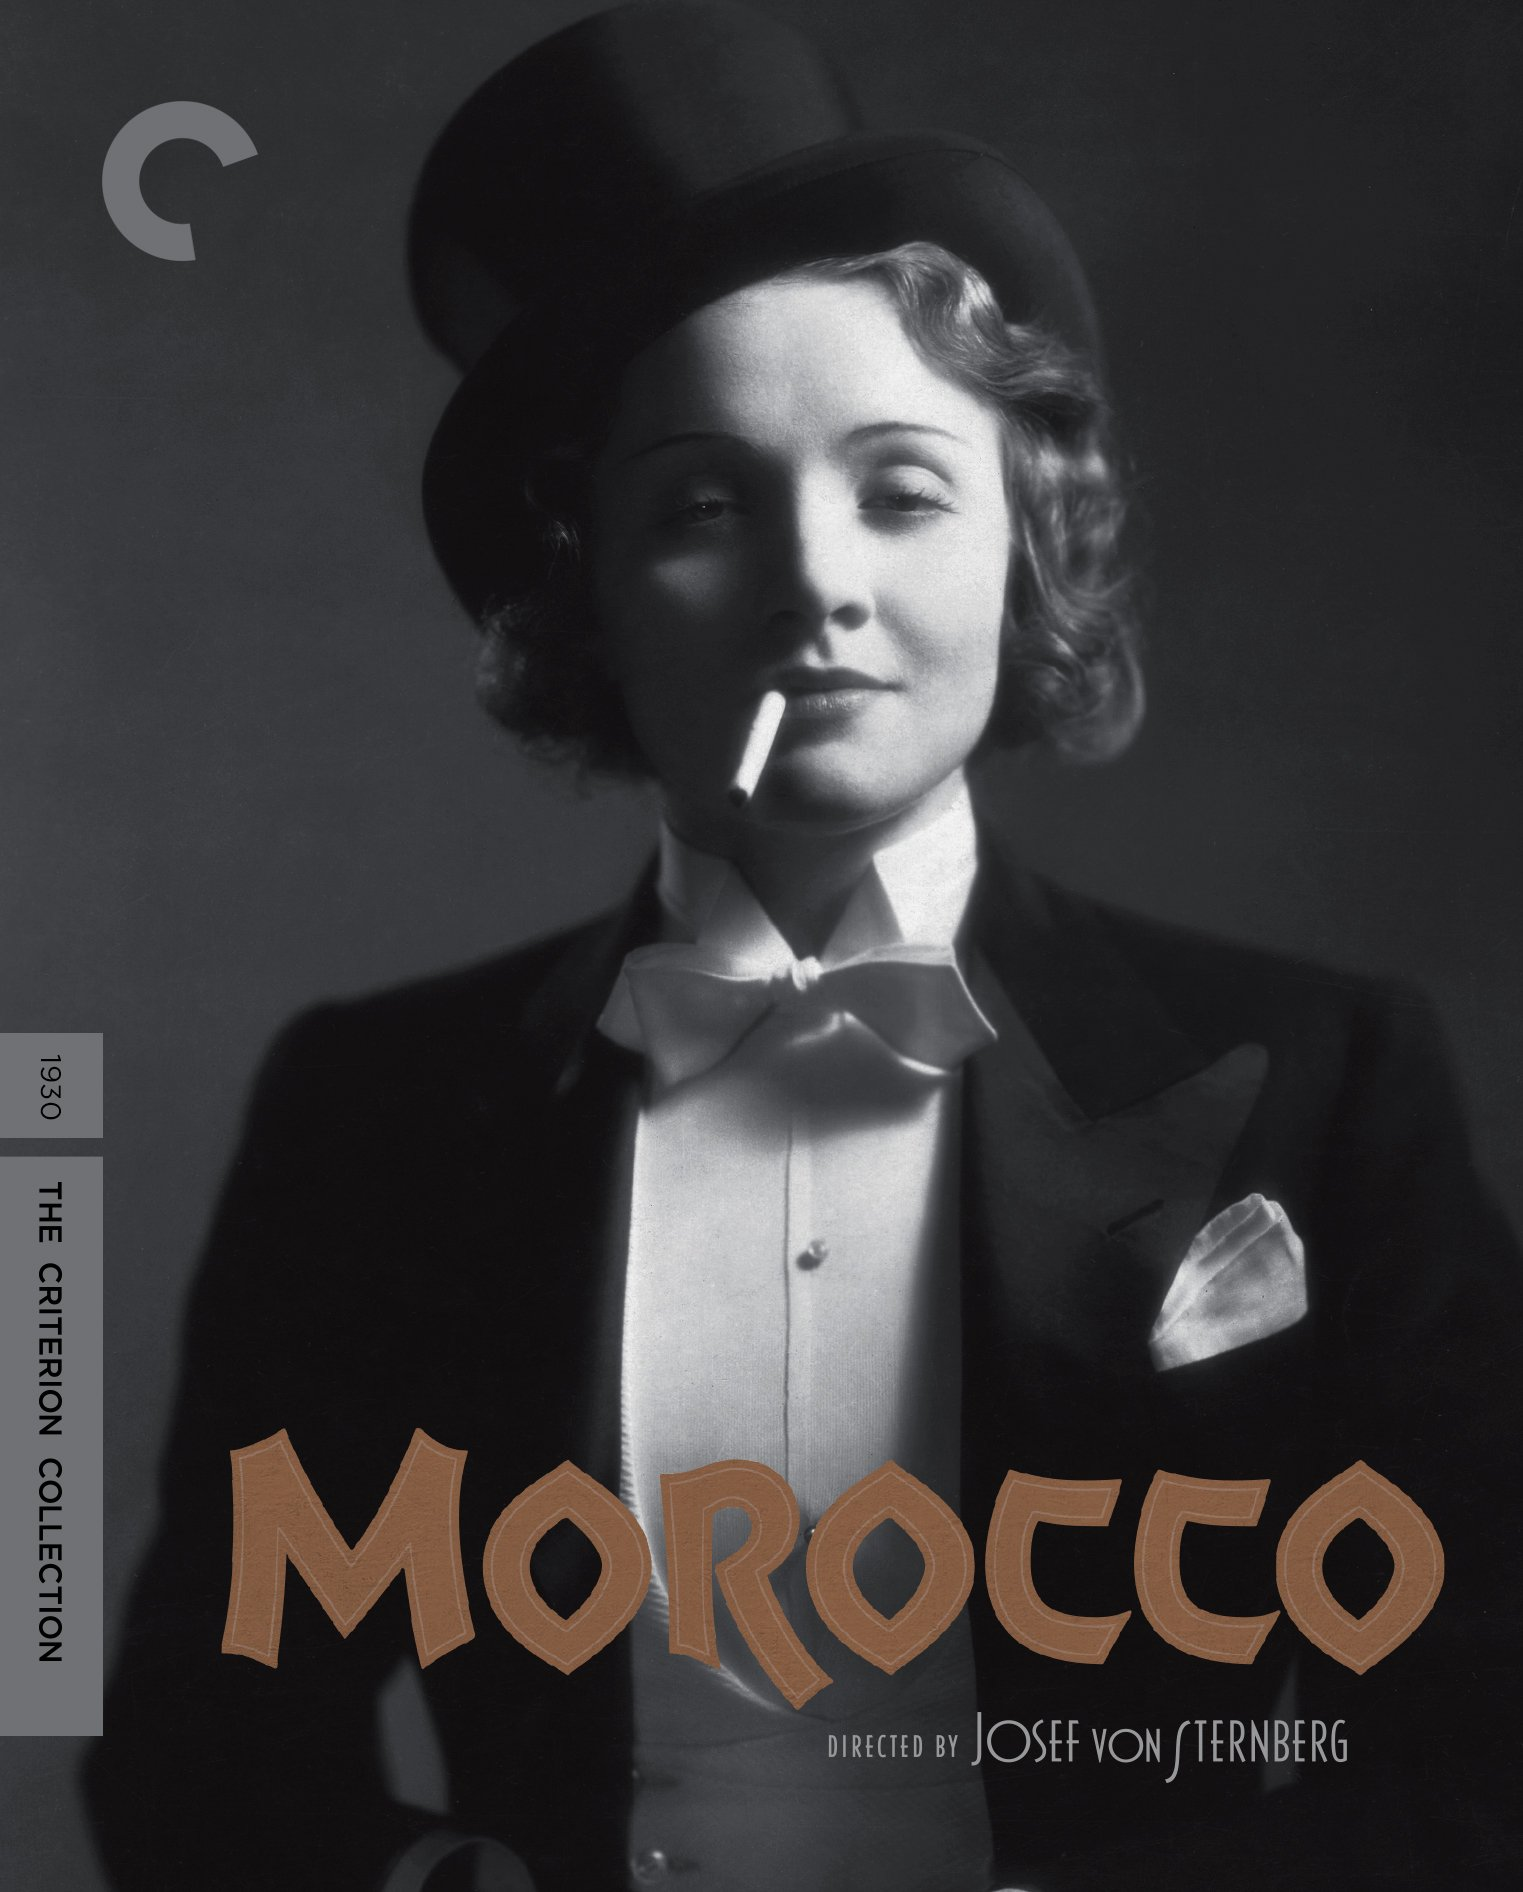 Dietrich and von Sternberg in Hollywood (Morocco, Dishonored